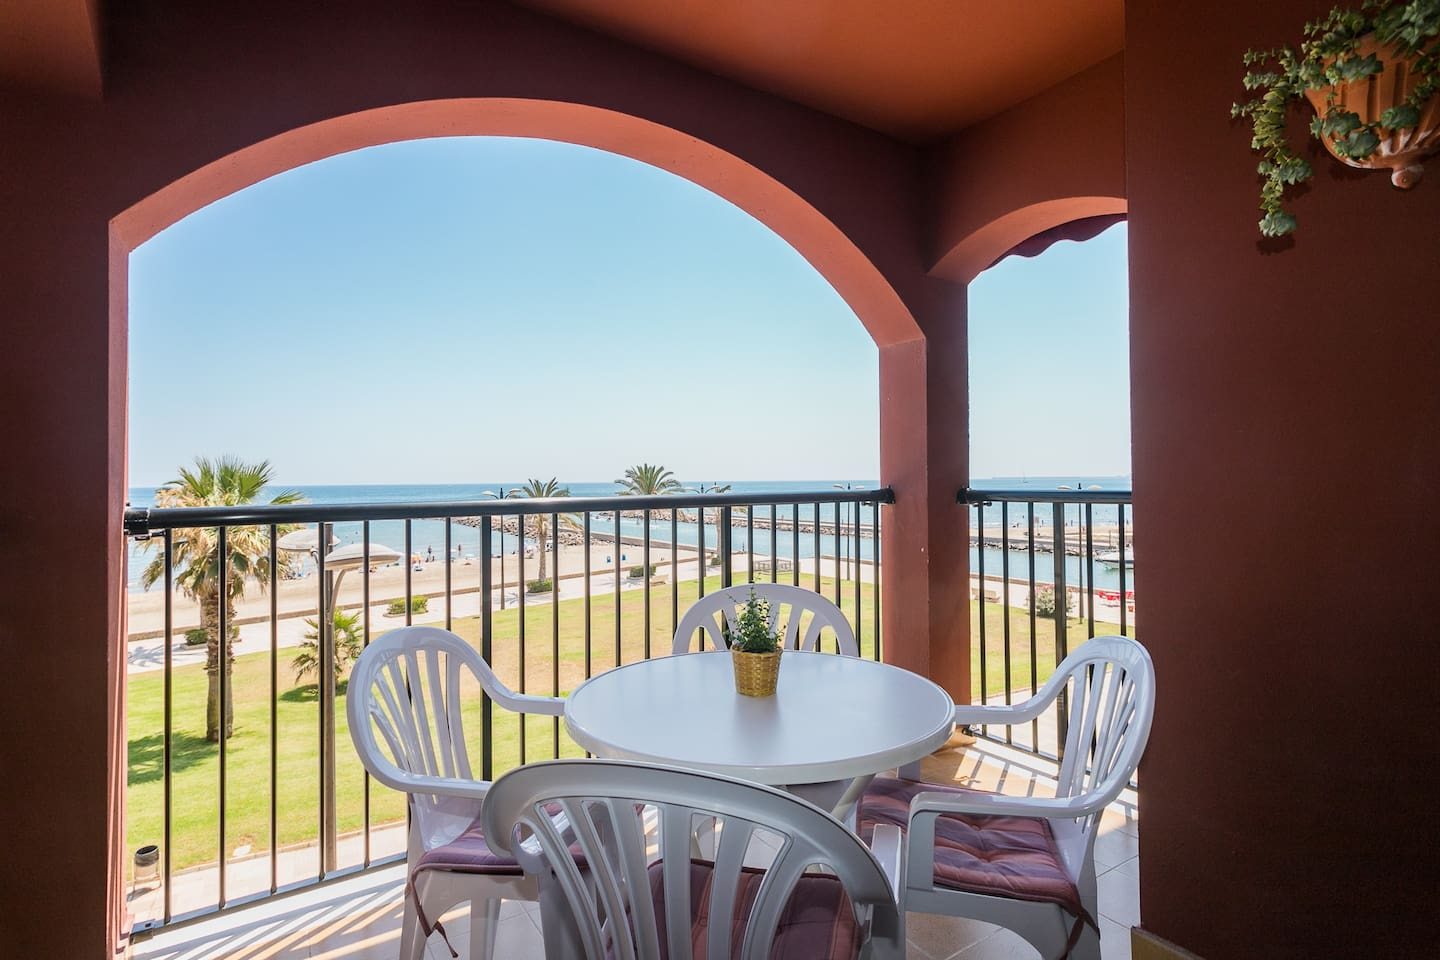 Terraza con vistas al paseo marítimo y a la playa, equipada con mesa y 4 sillas. Terrace with views of the promenade and the beach, equipped with table and 4 chairs.